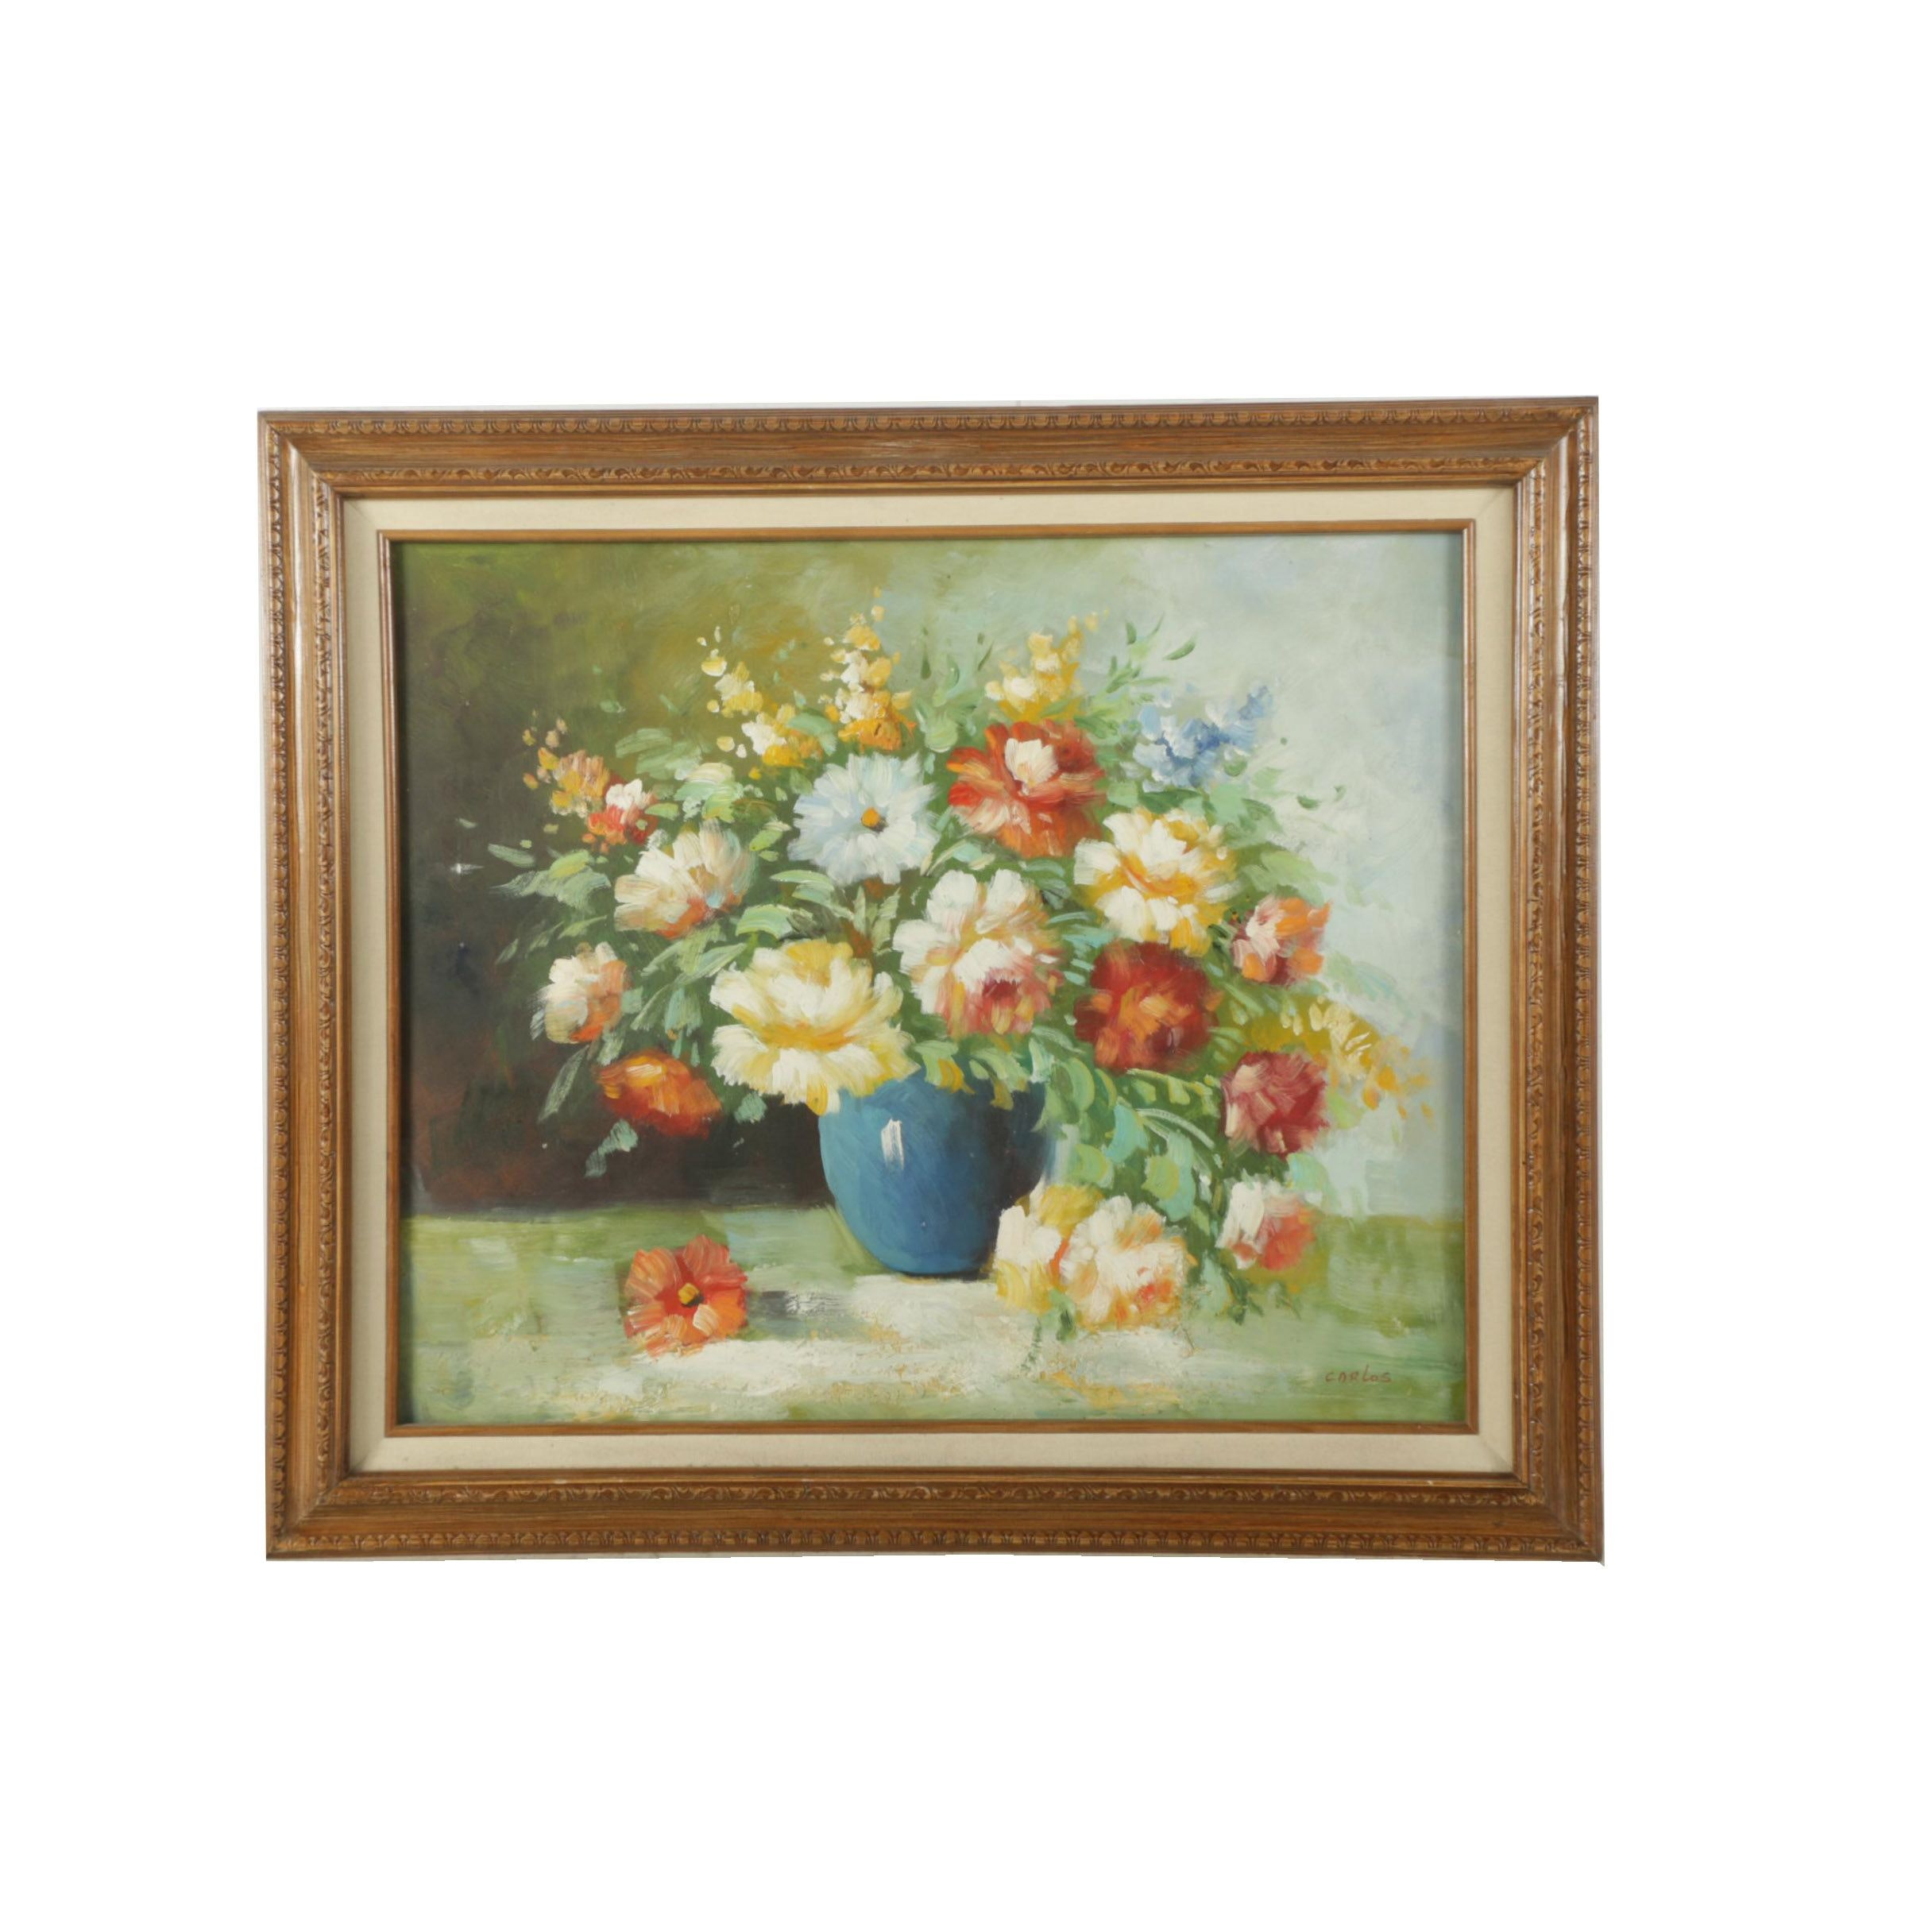 Carlos Oil Painting on Canvas of Floral Still Life